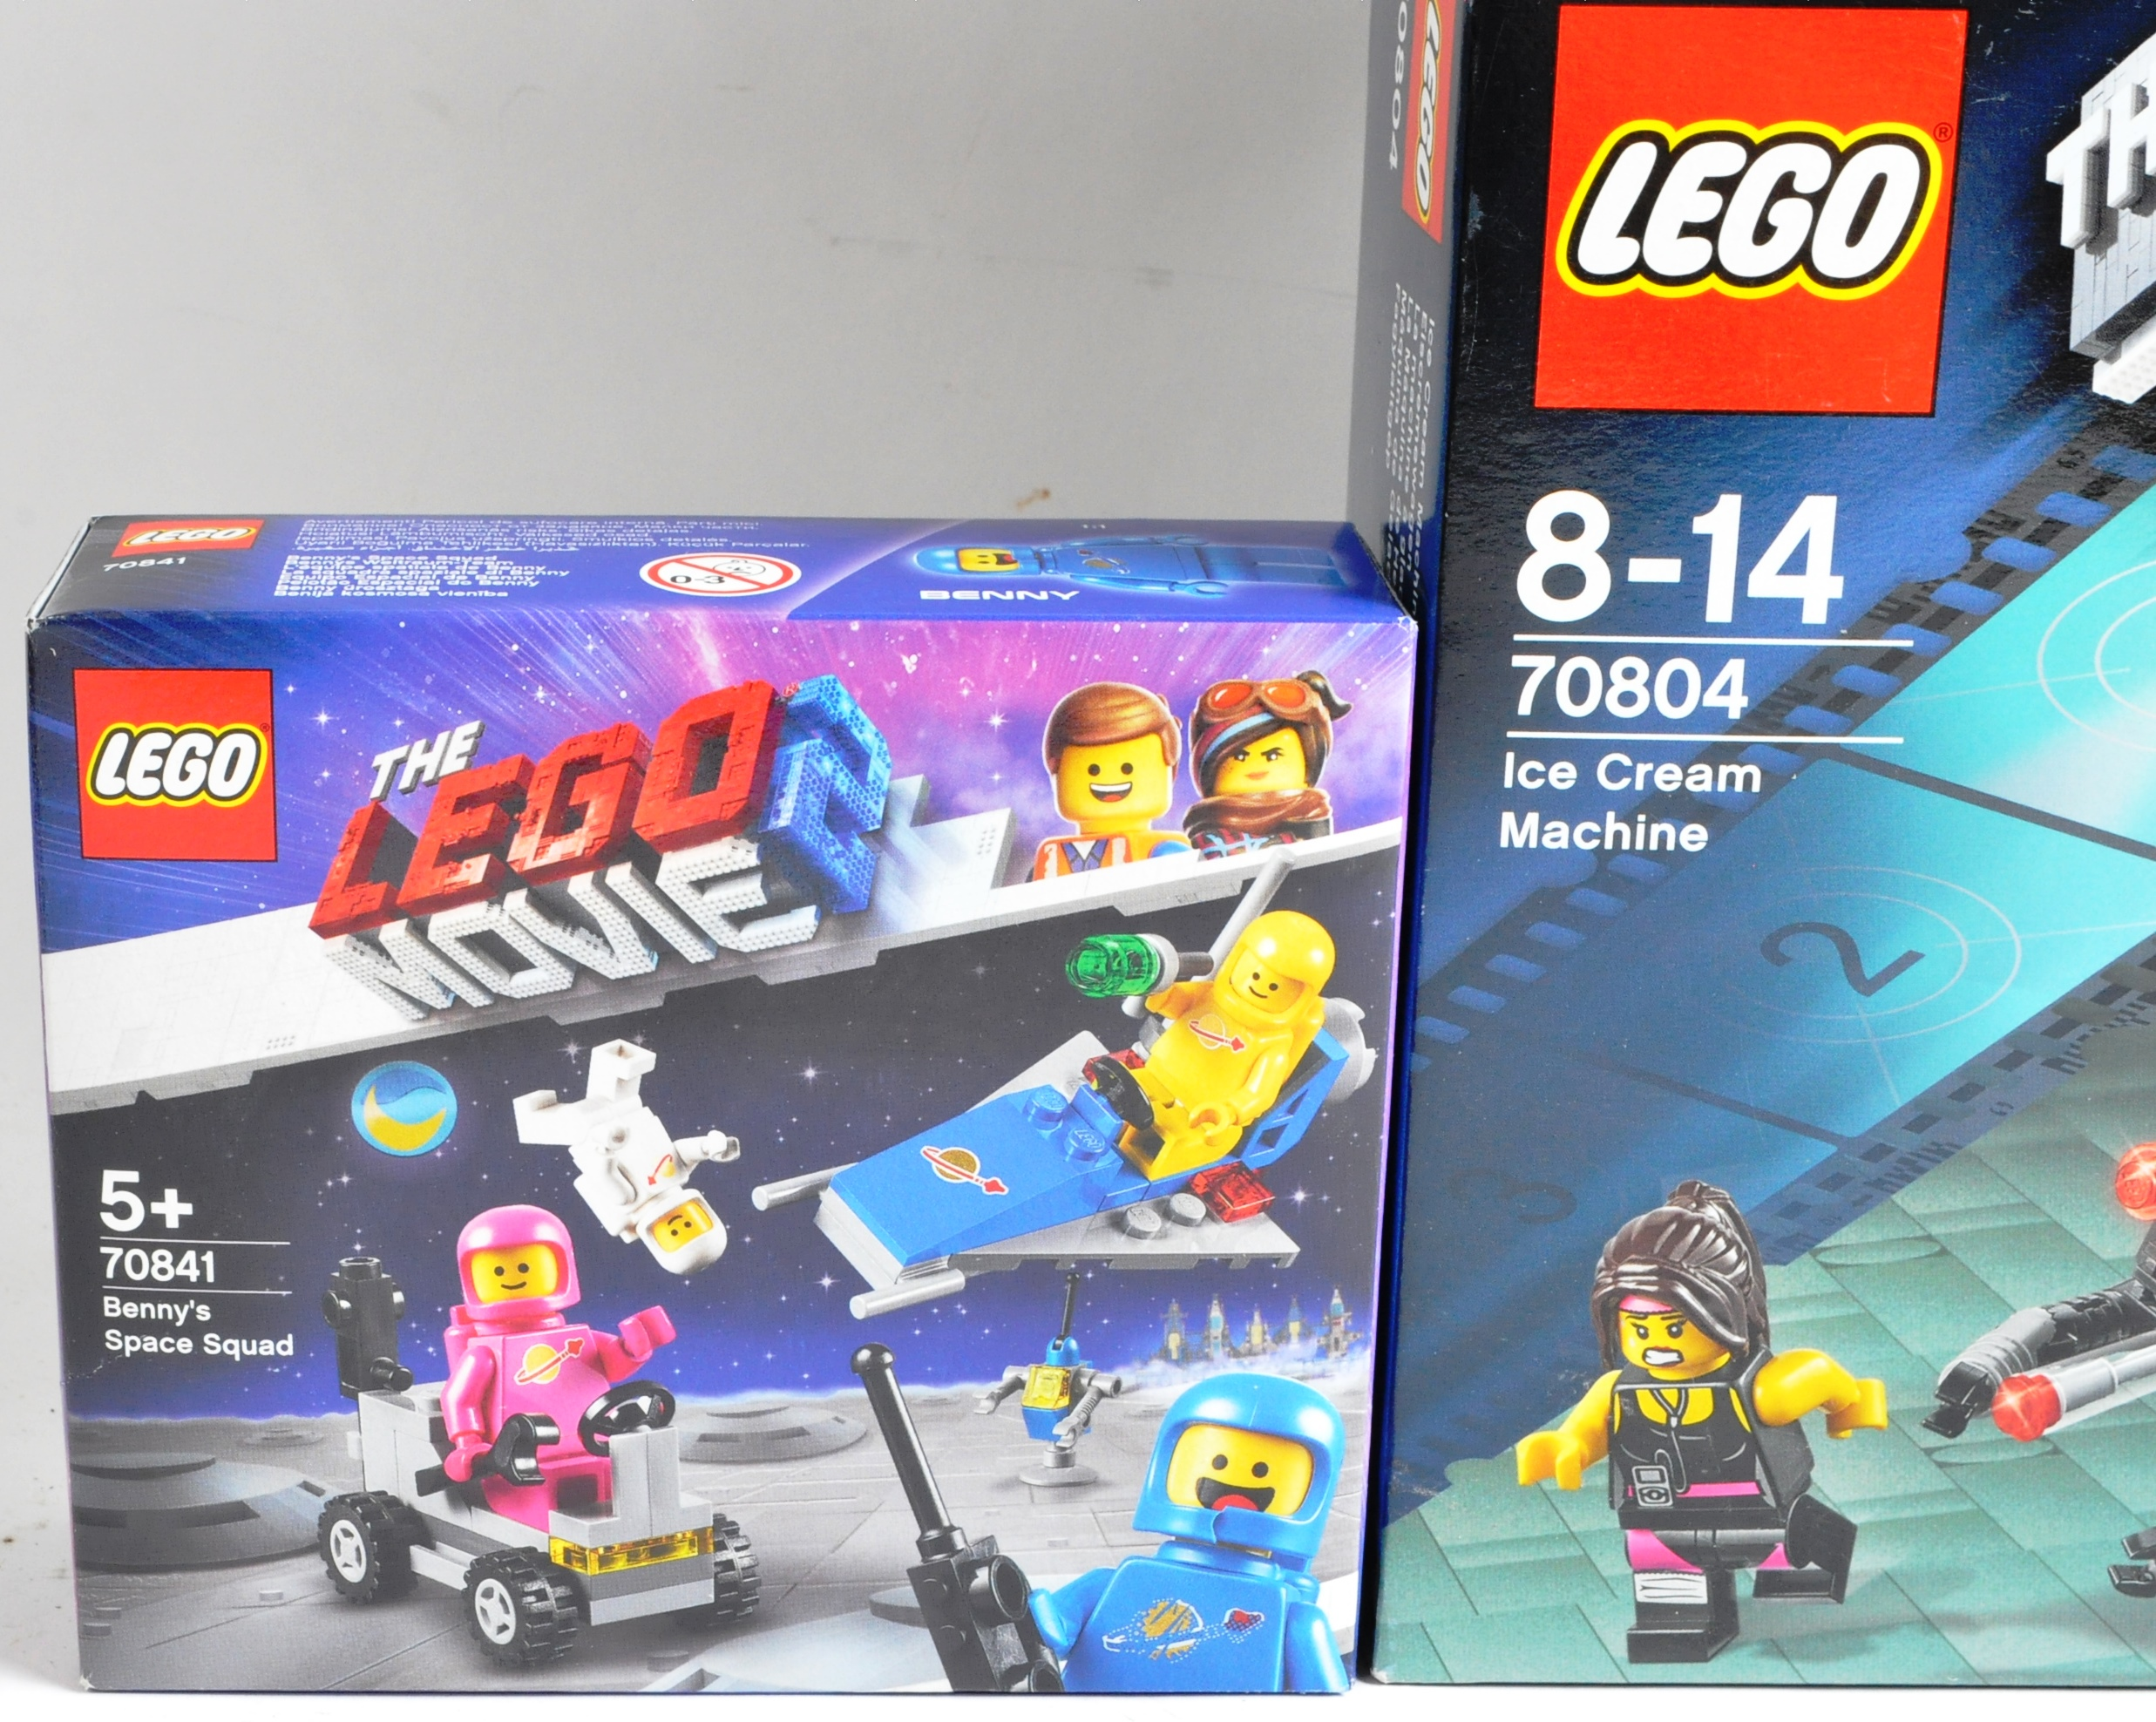 LEGO SETS - THE LEGO MOVIE - COLLECTION OF X7 LEGO MOVIE SETS - Image 2 of 17